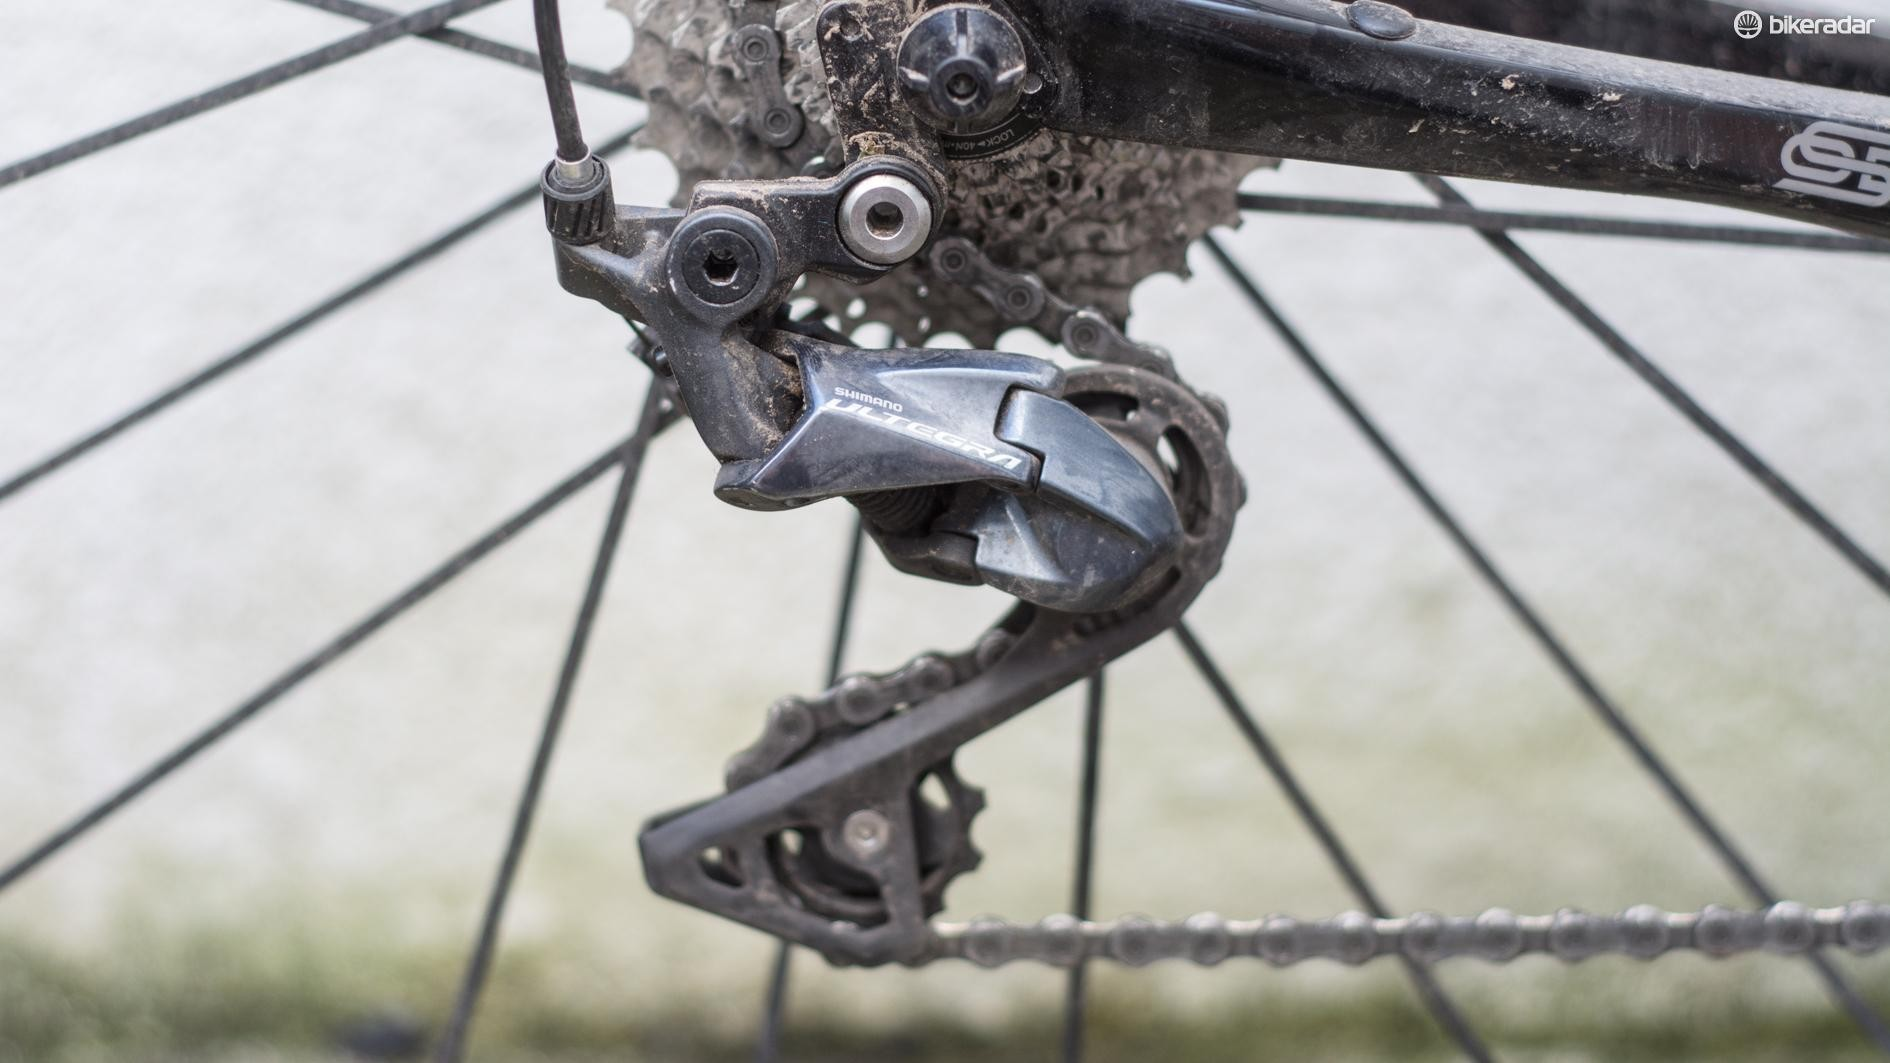 7dbfa6faf03 The new rear derailleur adopts Shimano's Shadow Geometry technology